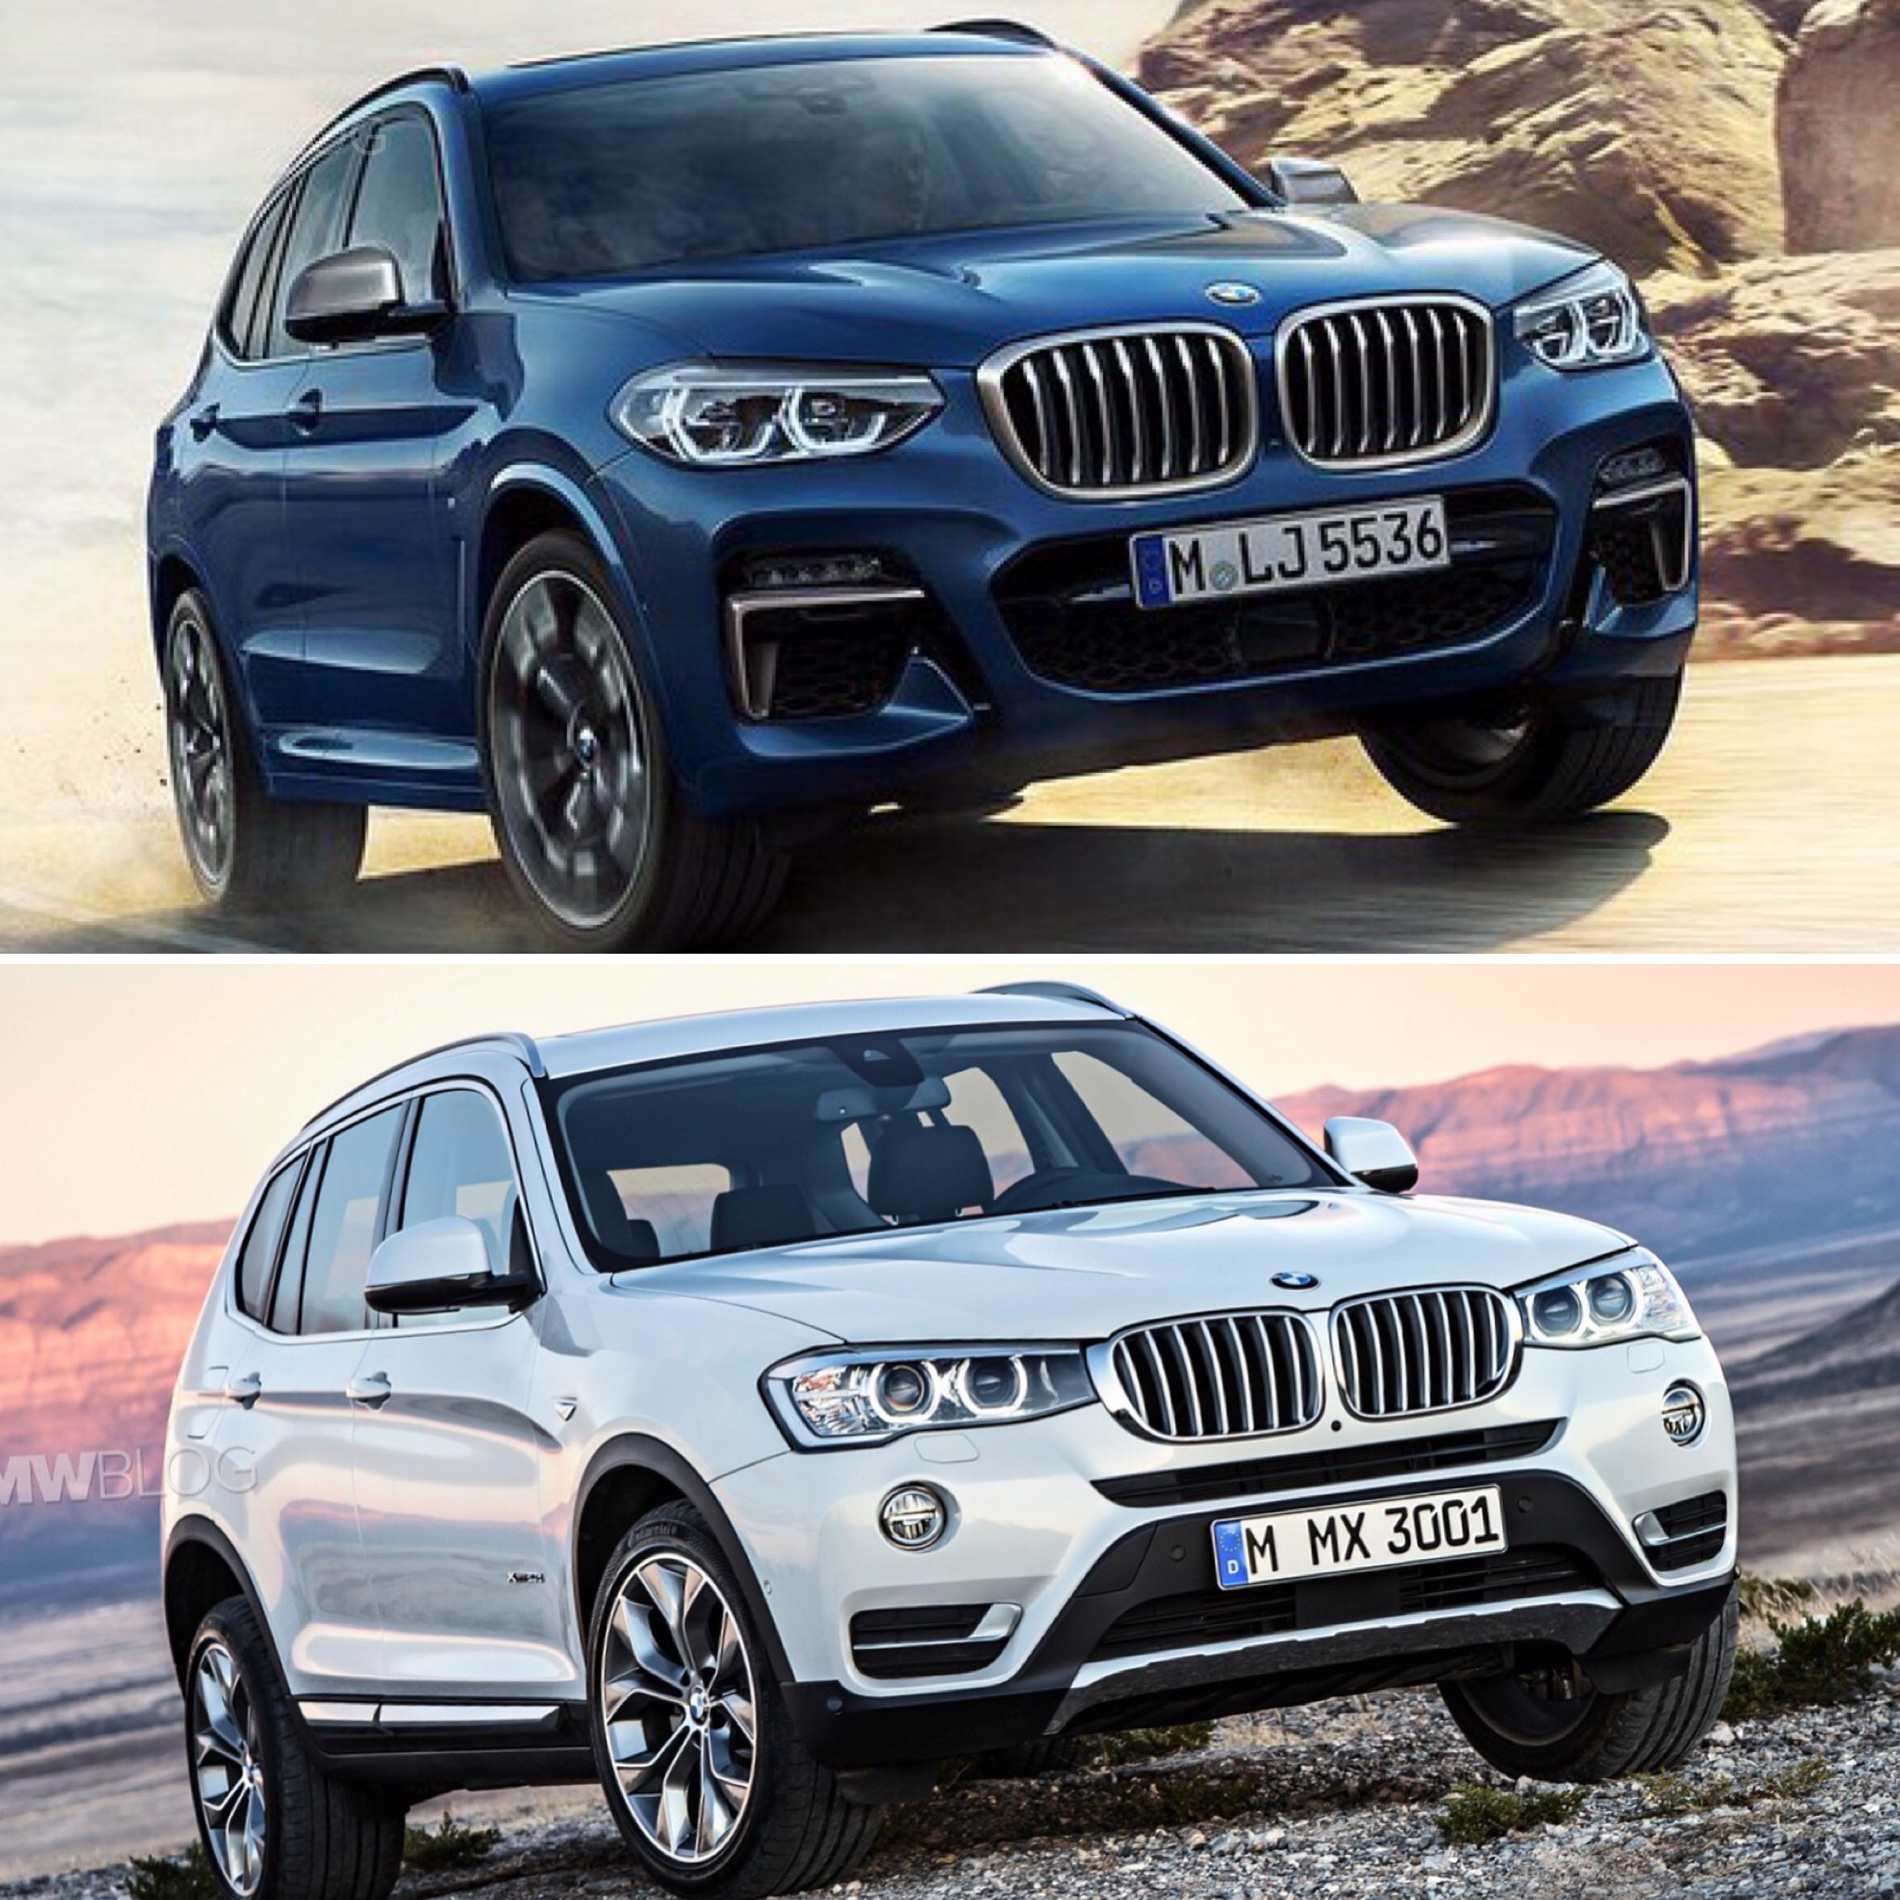 2018 Bmw X1 Vs X3 >> Photo Comparison: G01 BMW X3 vs F25 BMW X3